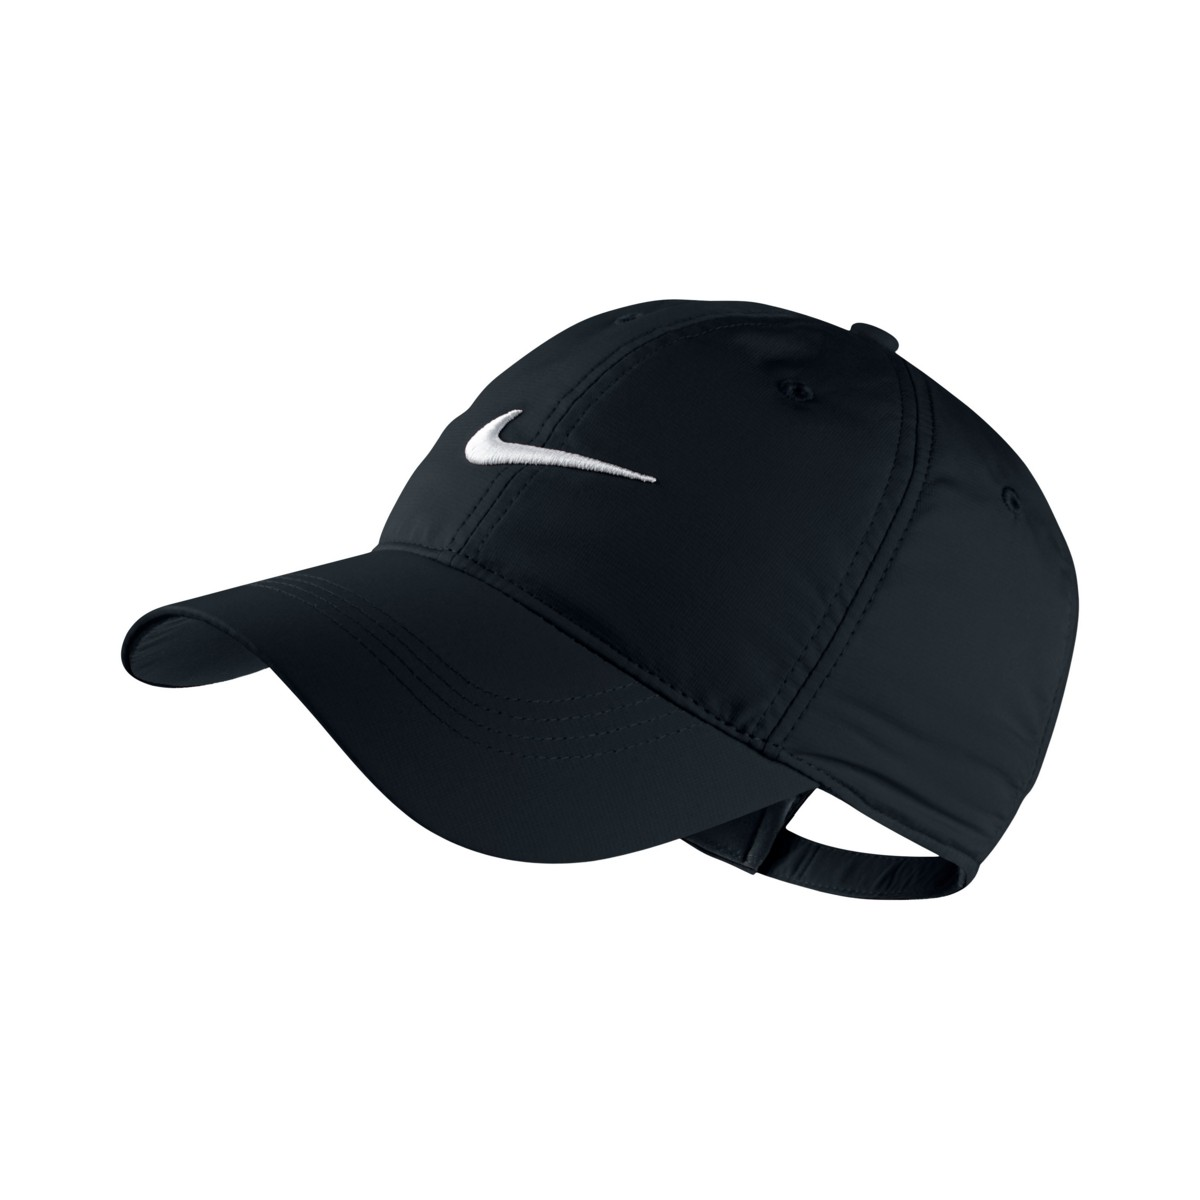 Nike-Golf-2011-Tech-Swoosh-Cap-RRP-14-99